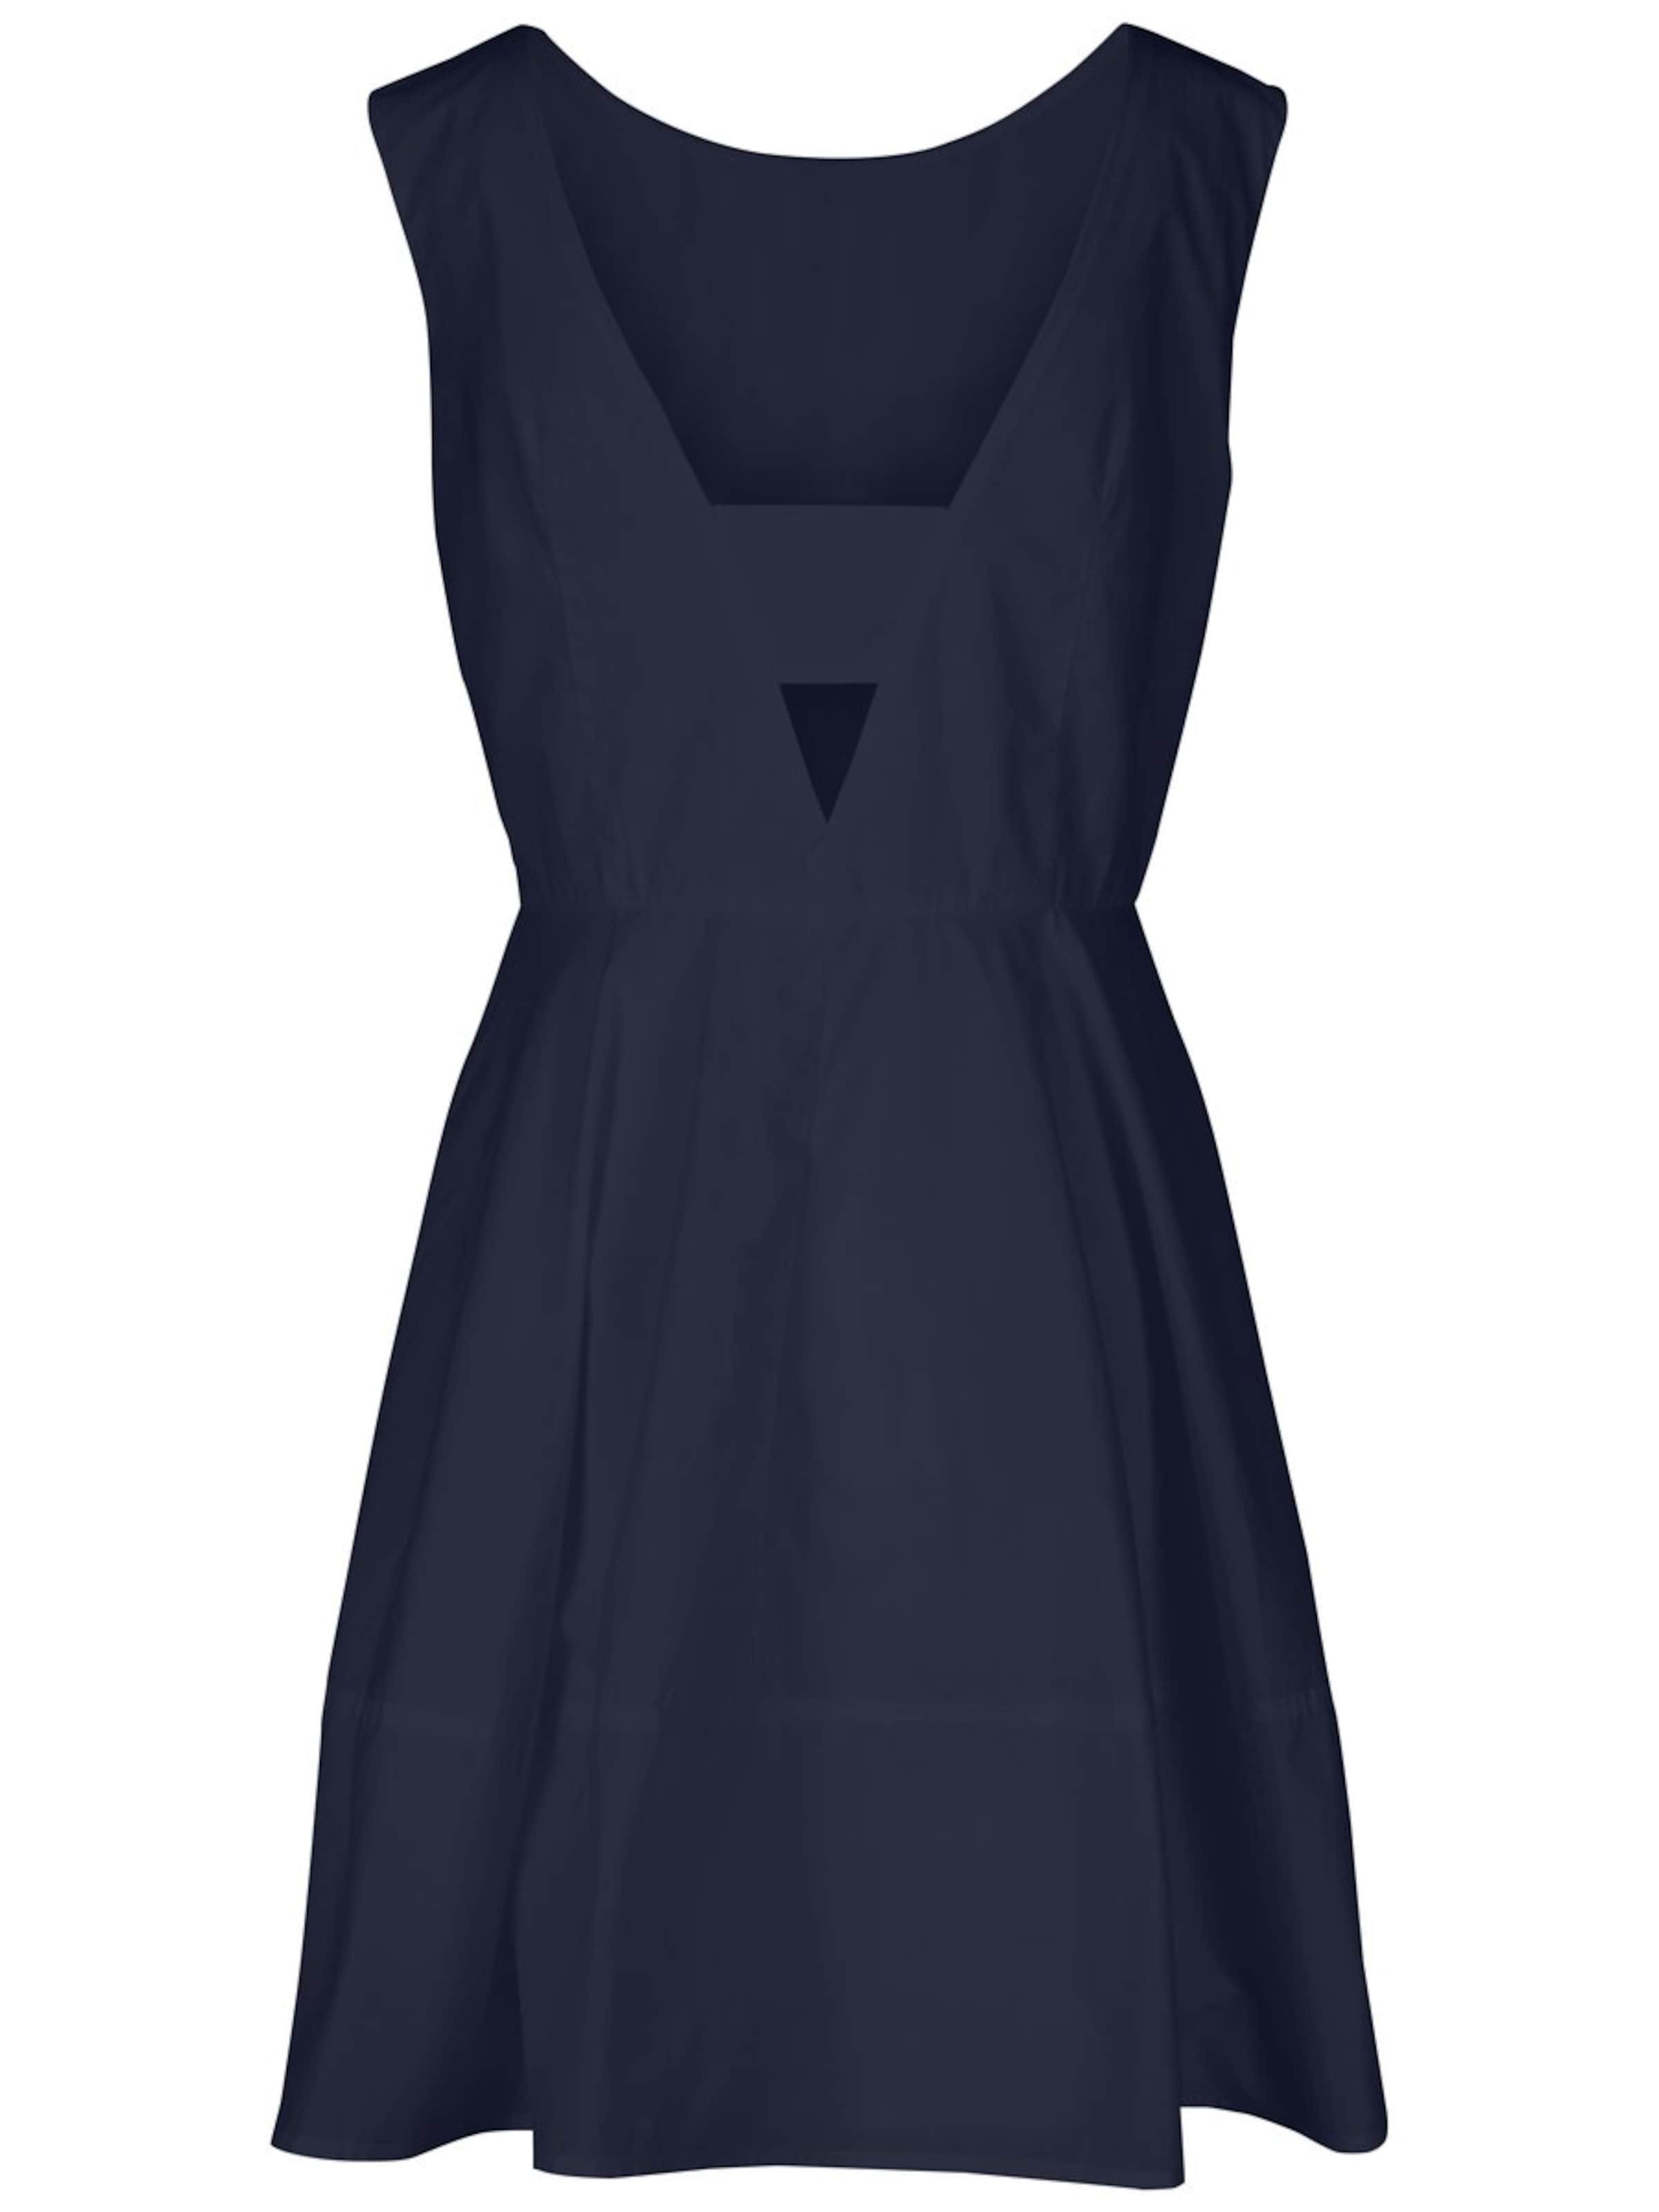 Navy s a Y In Kleid qSVUMGzp